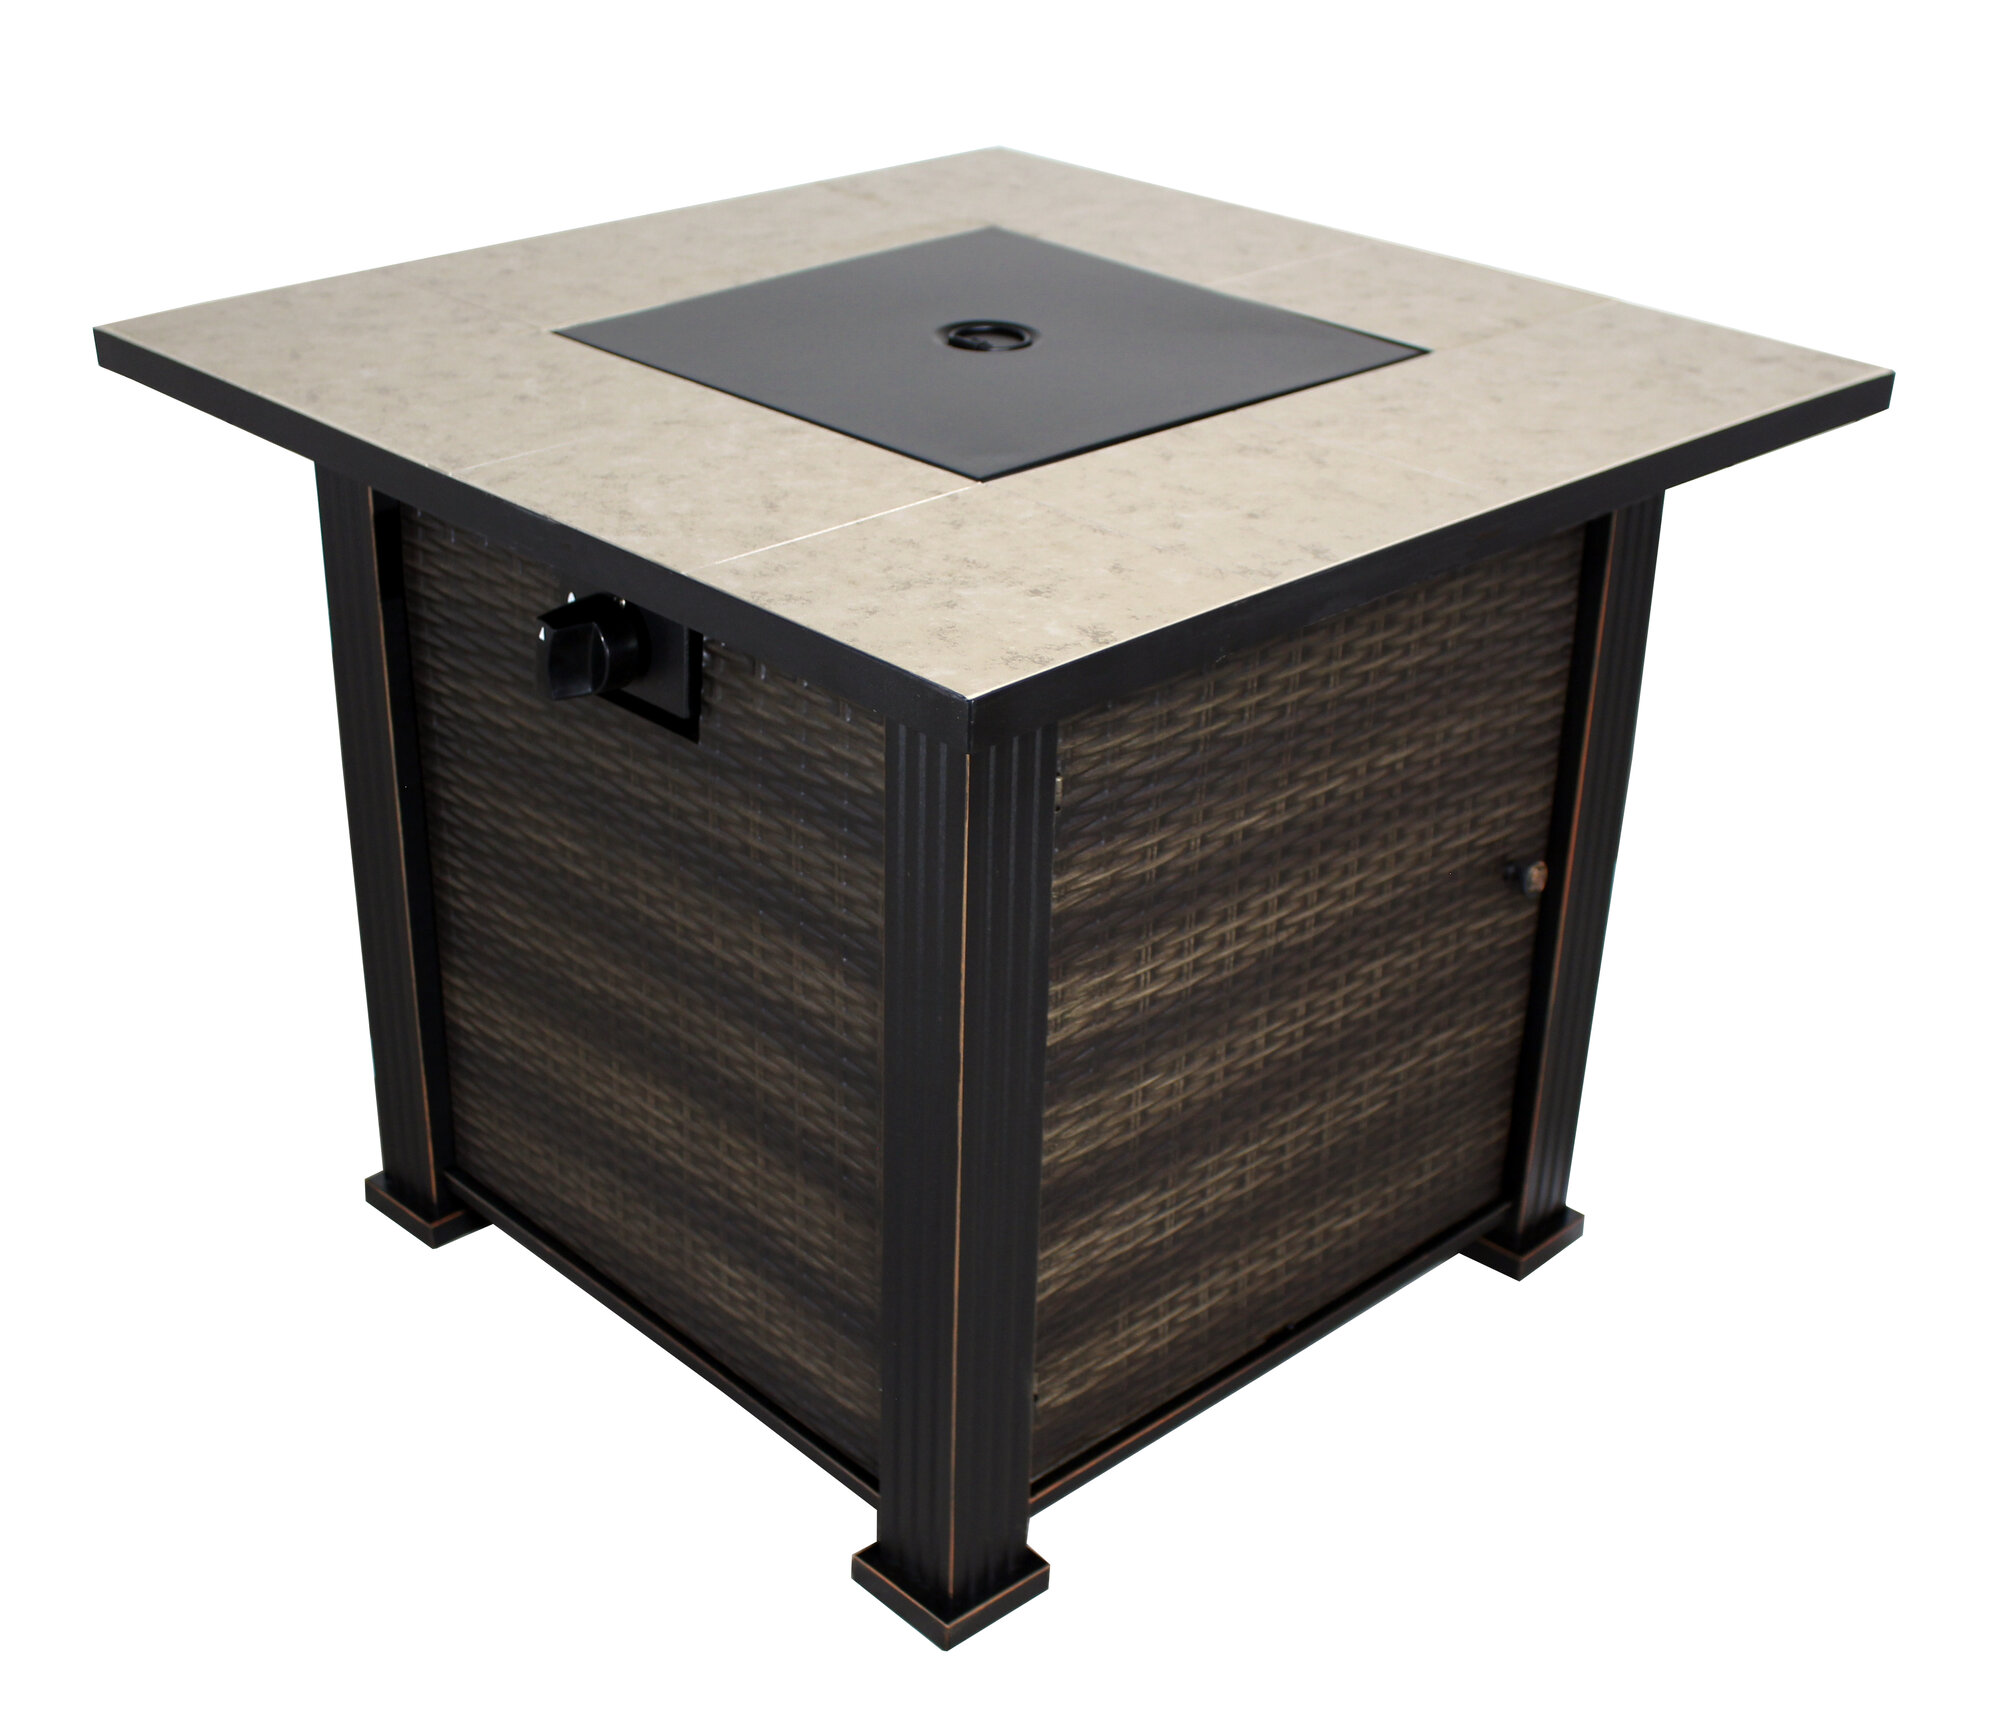 California Outdoor Designs New Haven Porcelain Steel Propane Fire Pit Table